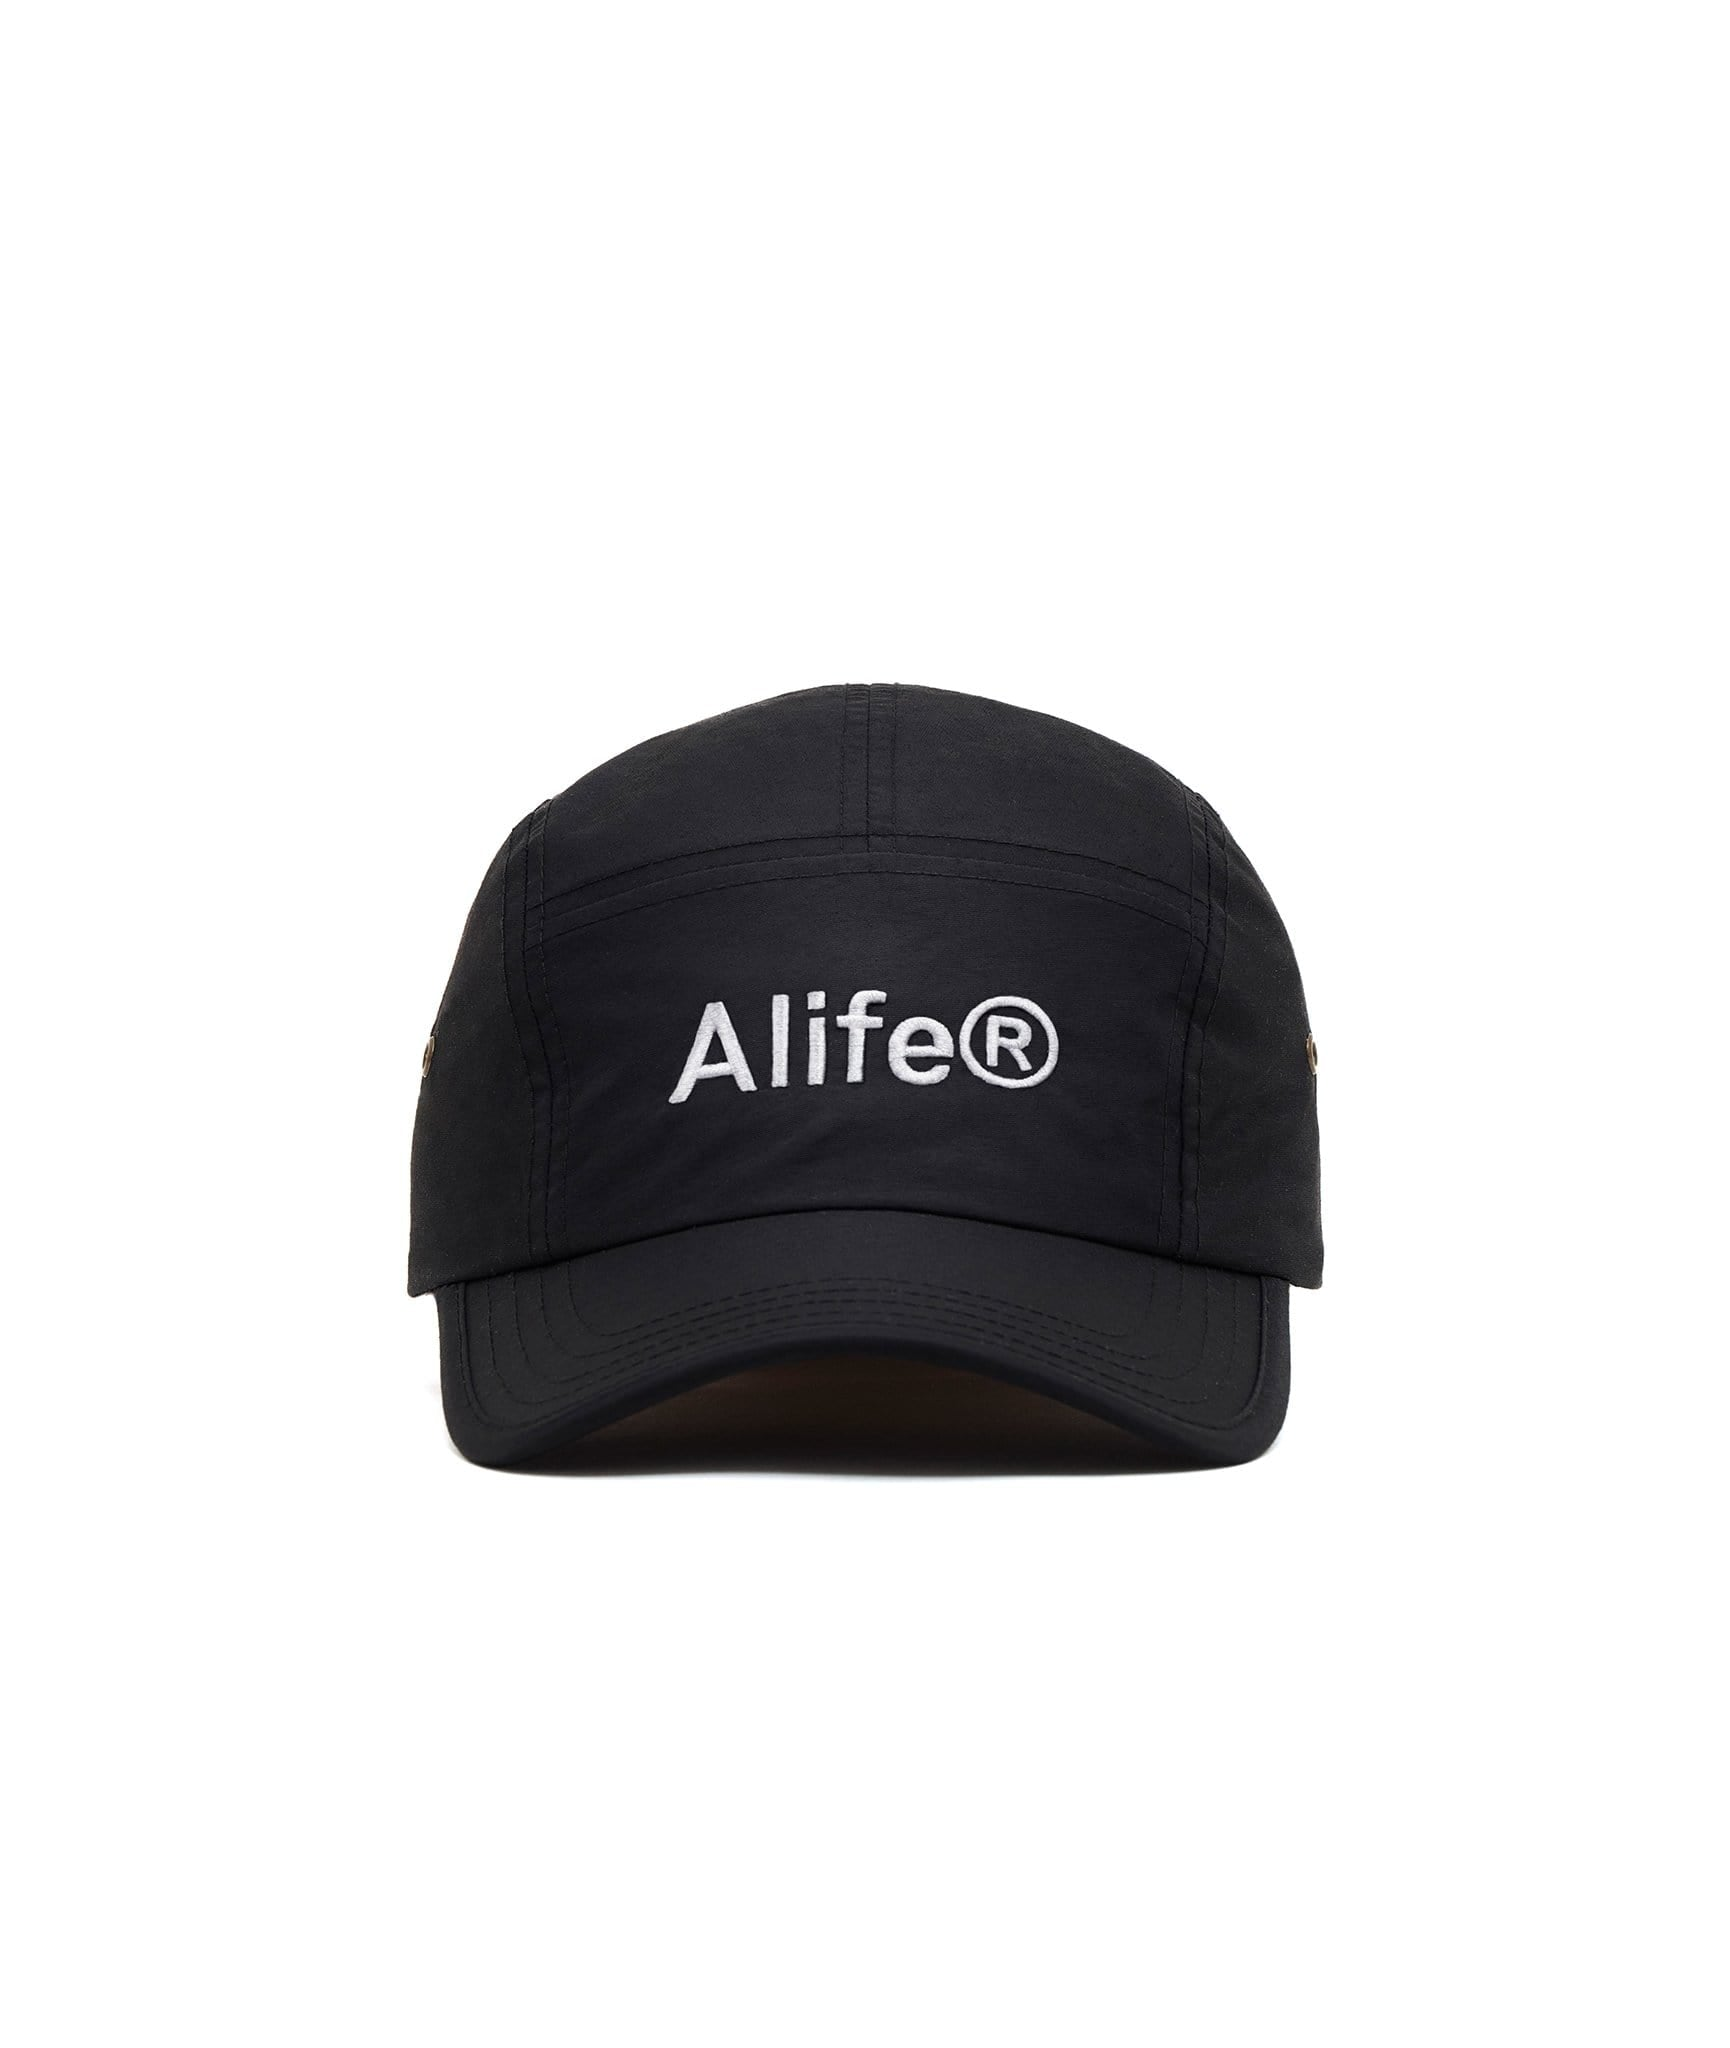 Alife Nylon 5-Panel Hat